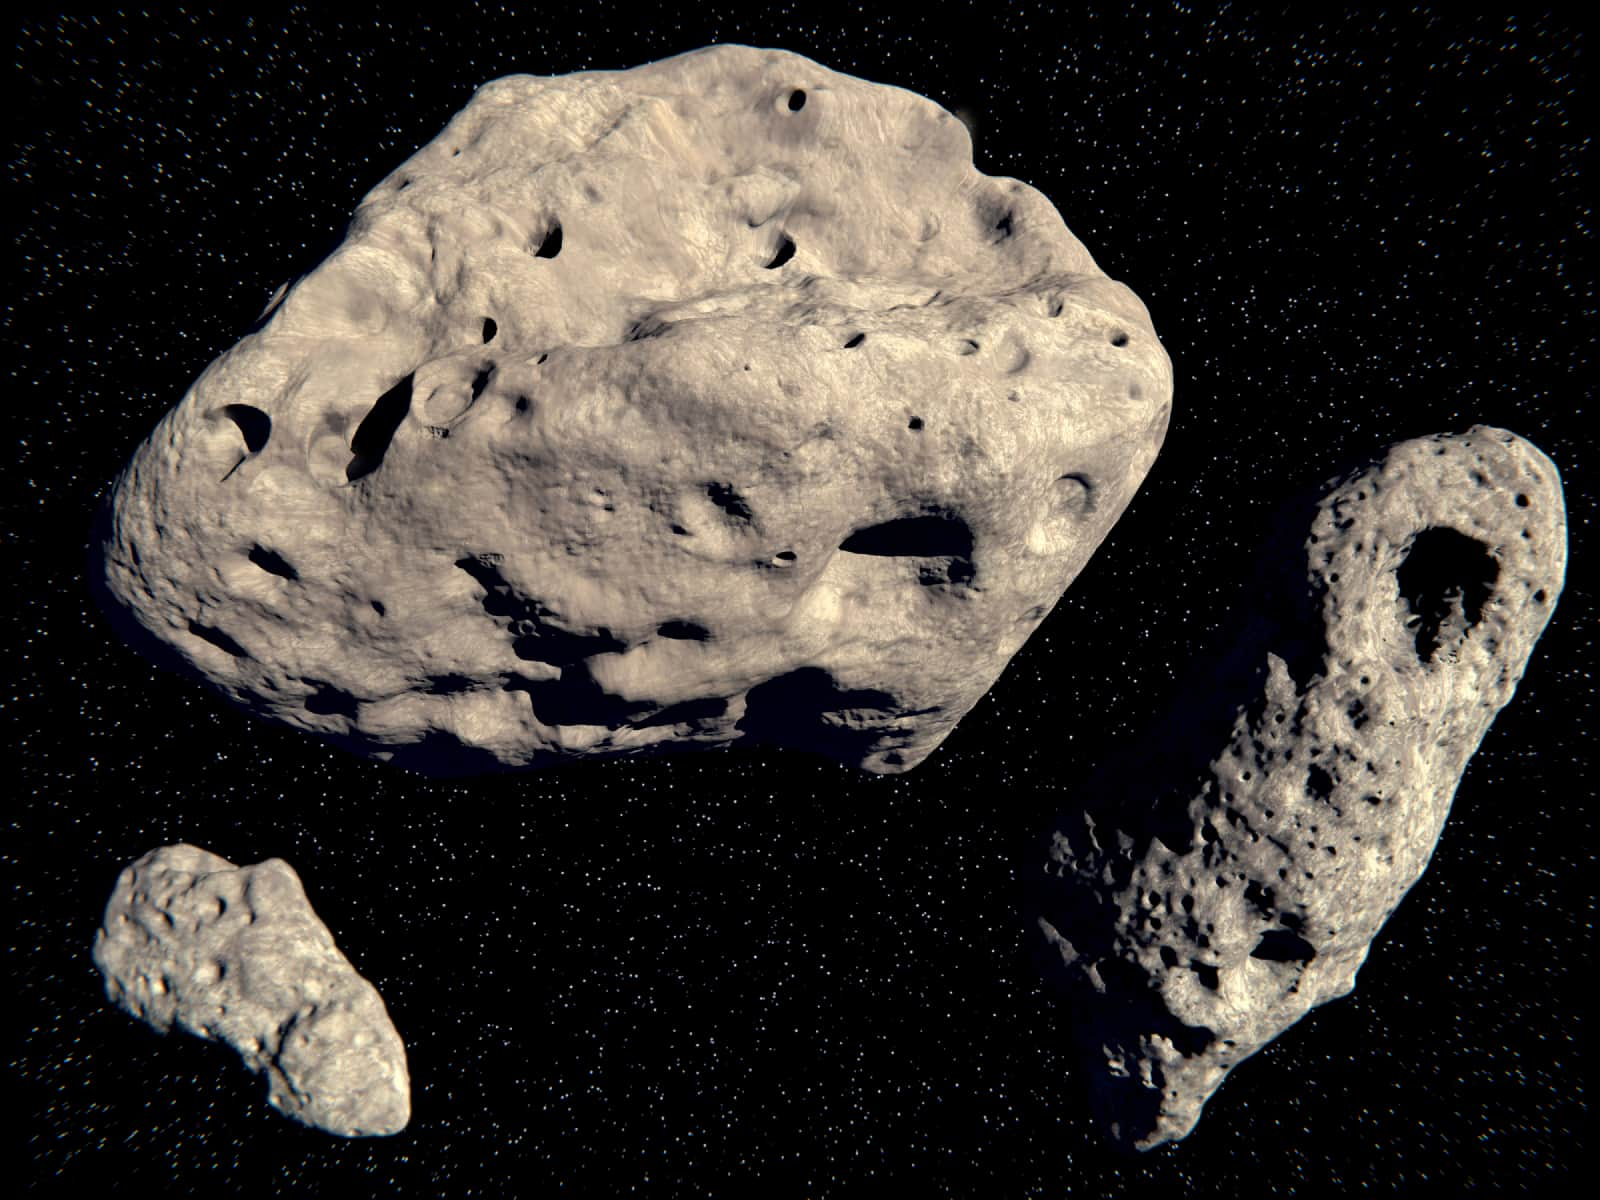 asteroid mining in space - photo #13